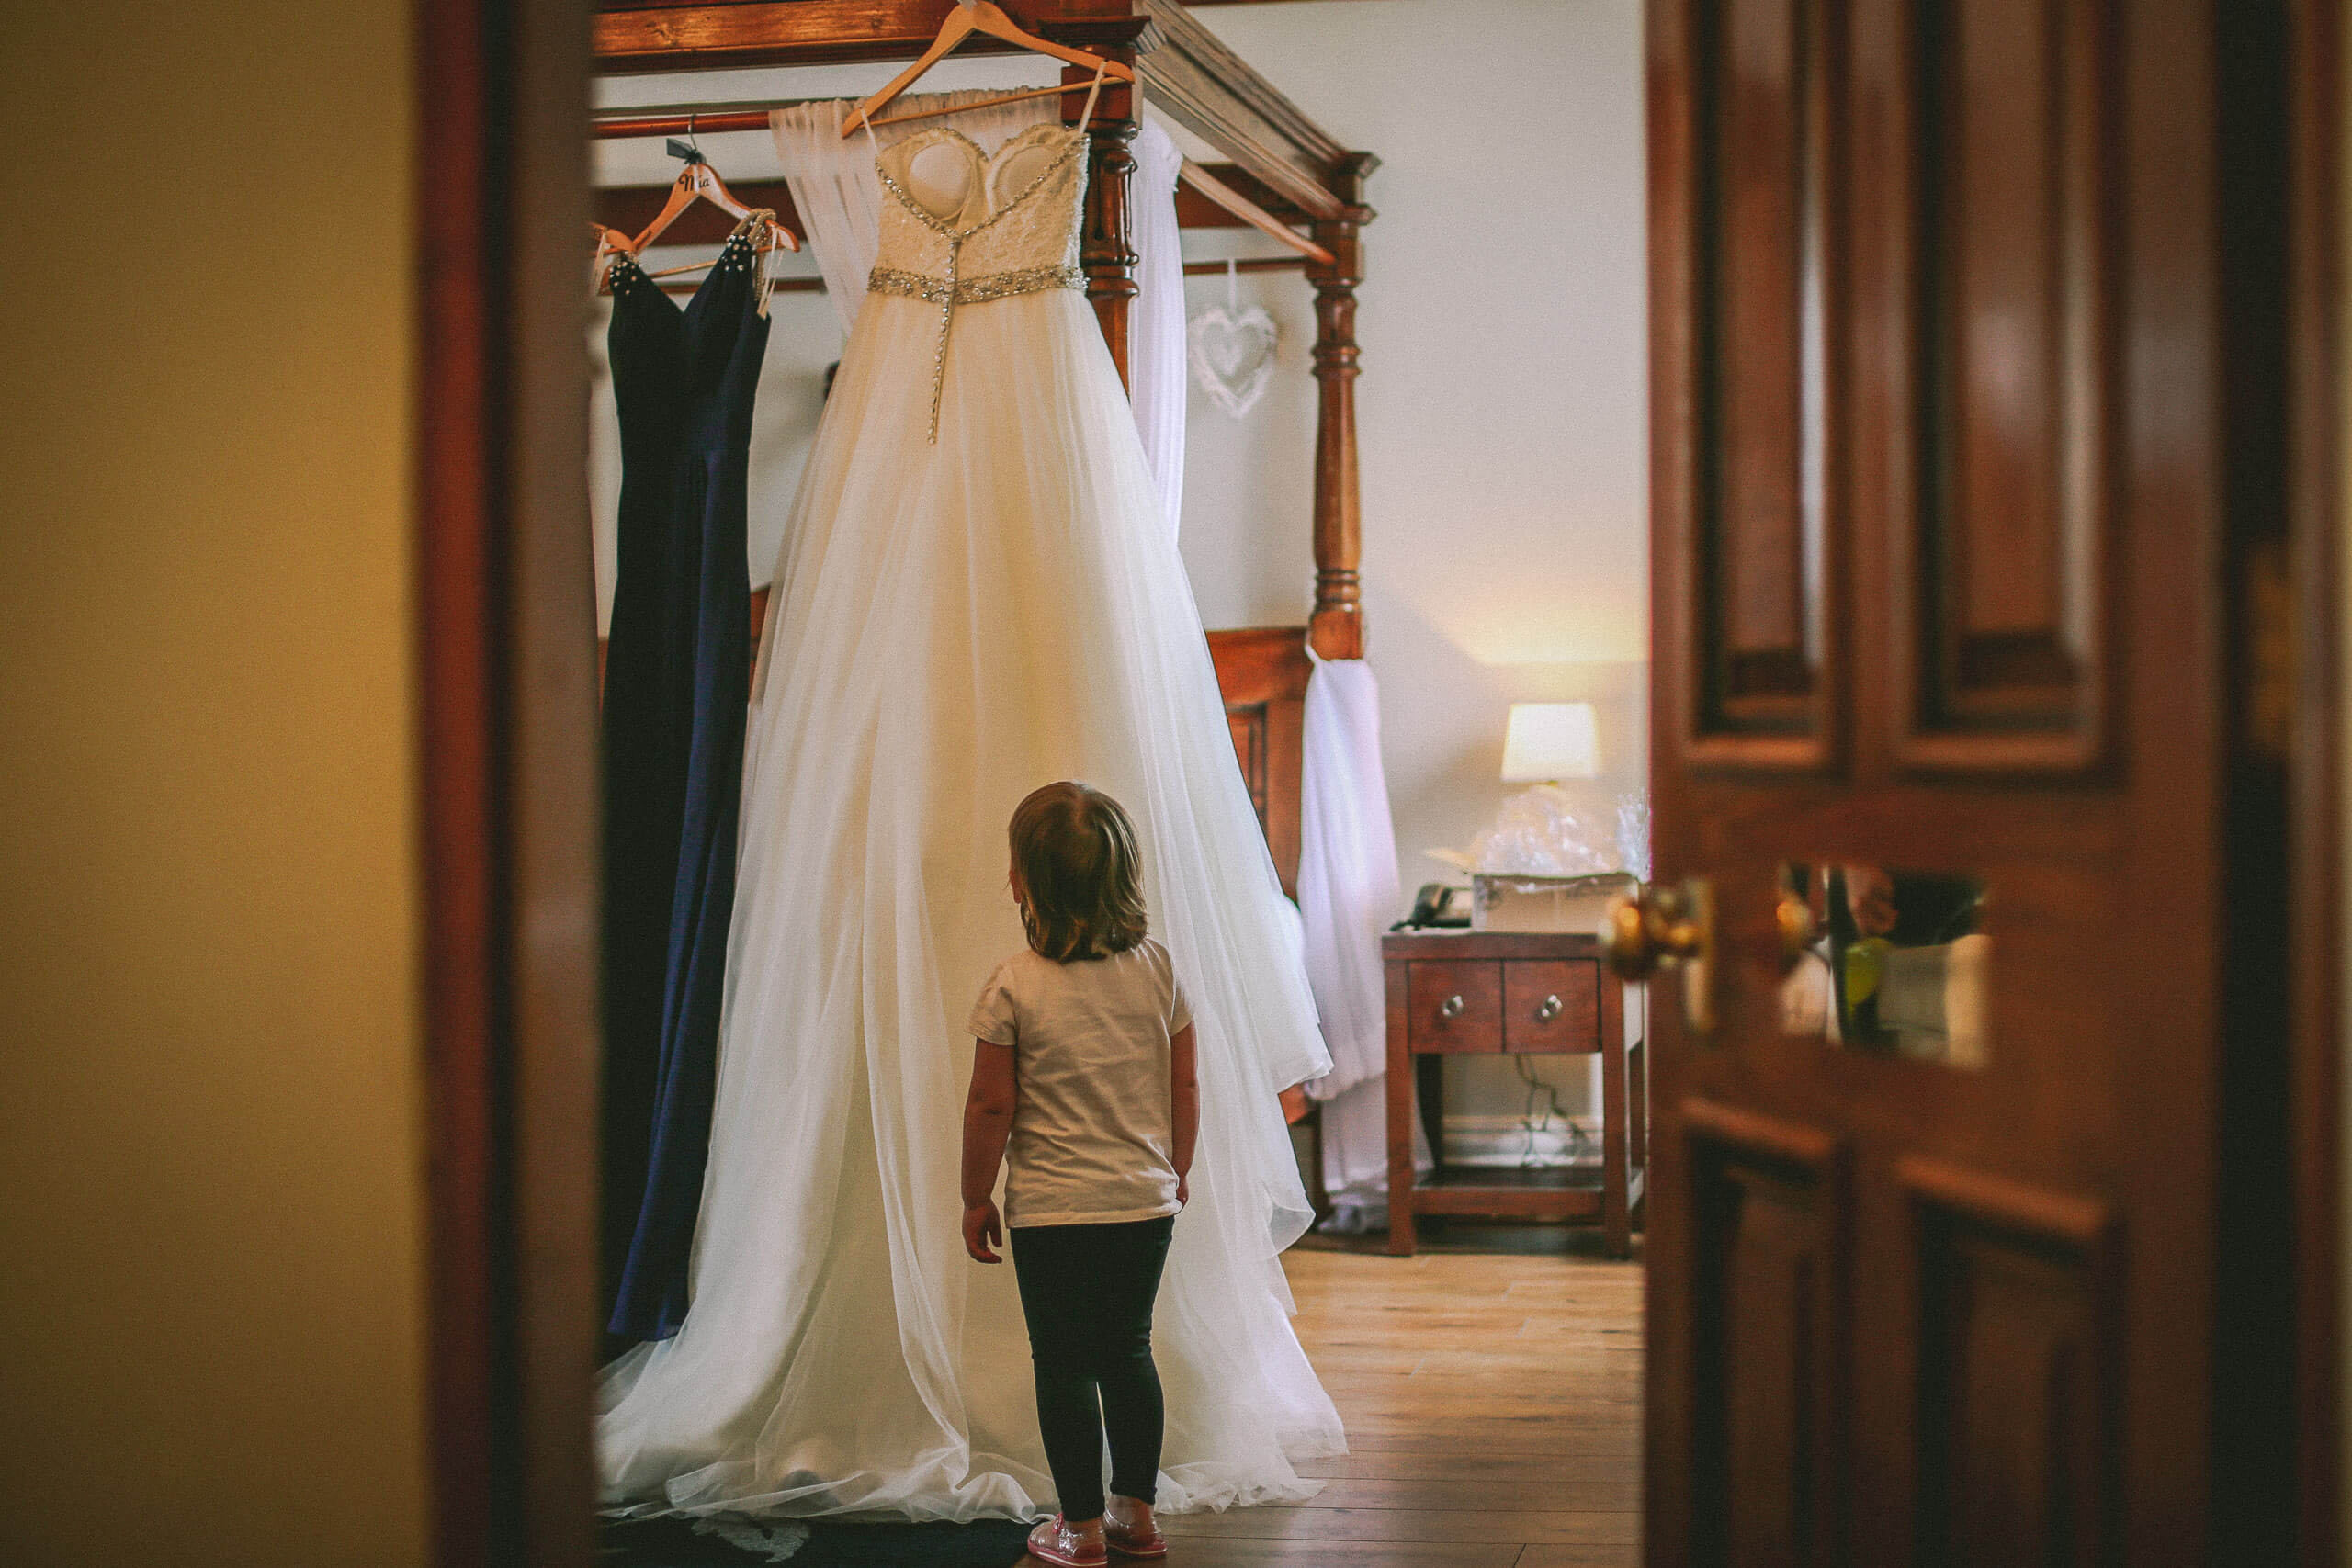 Little girl looking at wedding dress through door of bridal suite West Tower